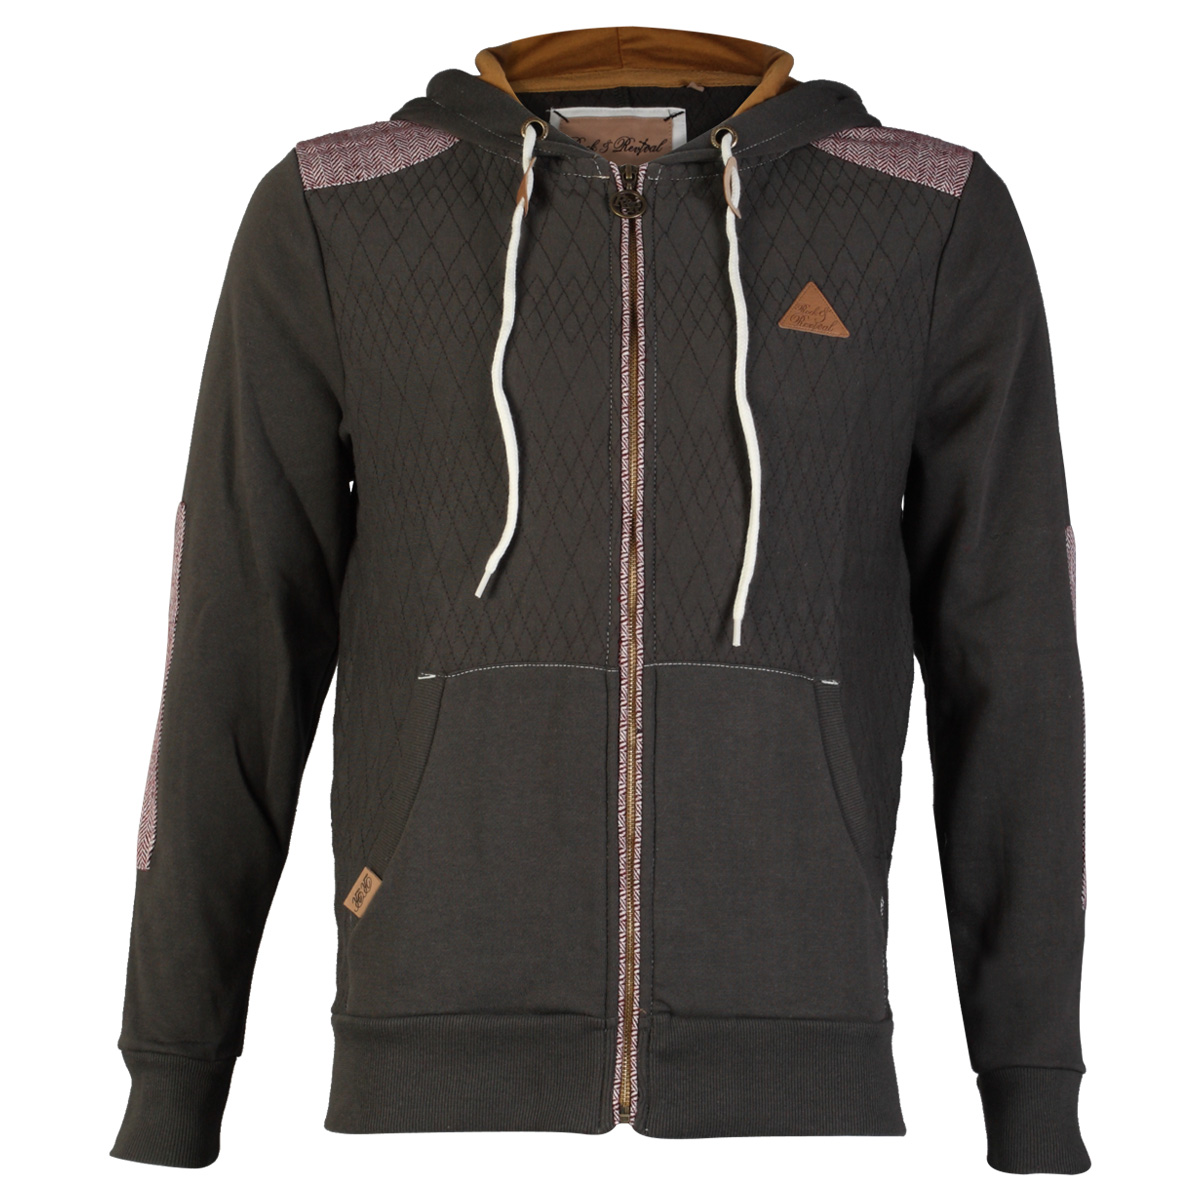 Another featured rock style hoodie jacket is the